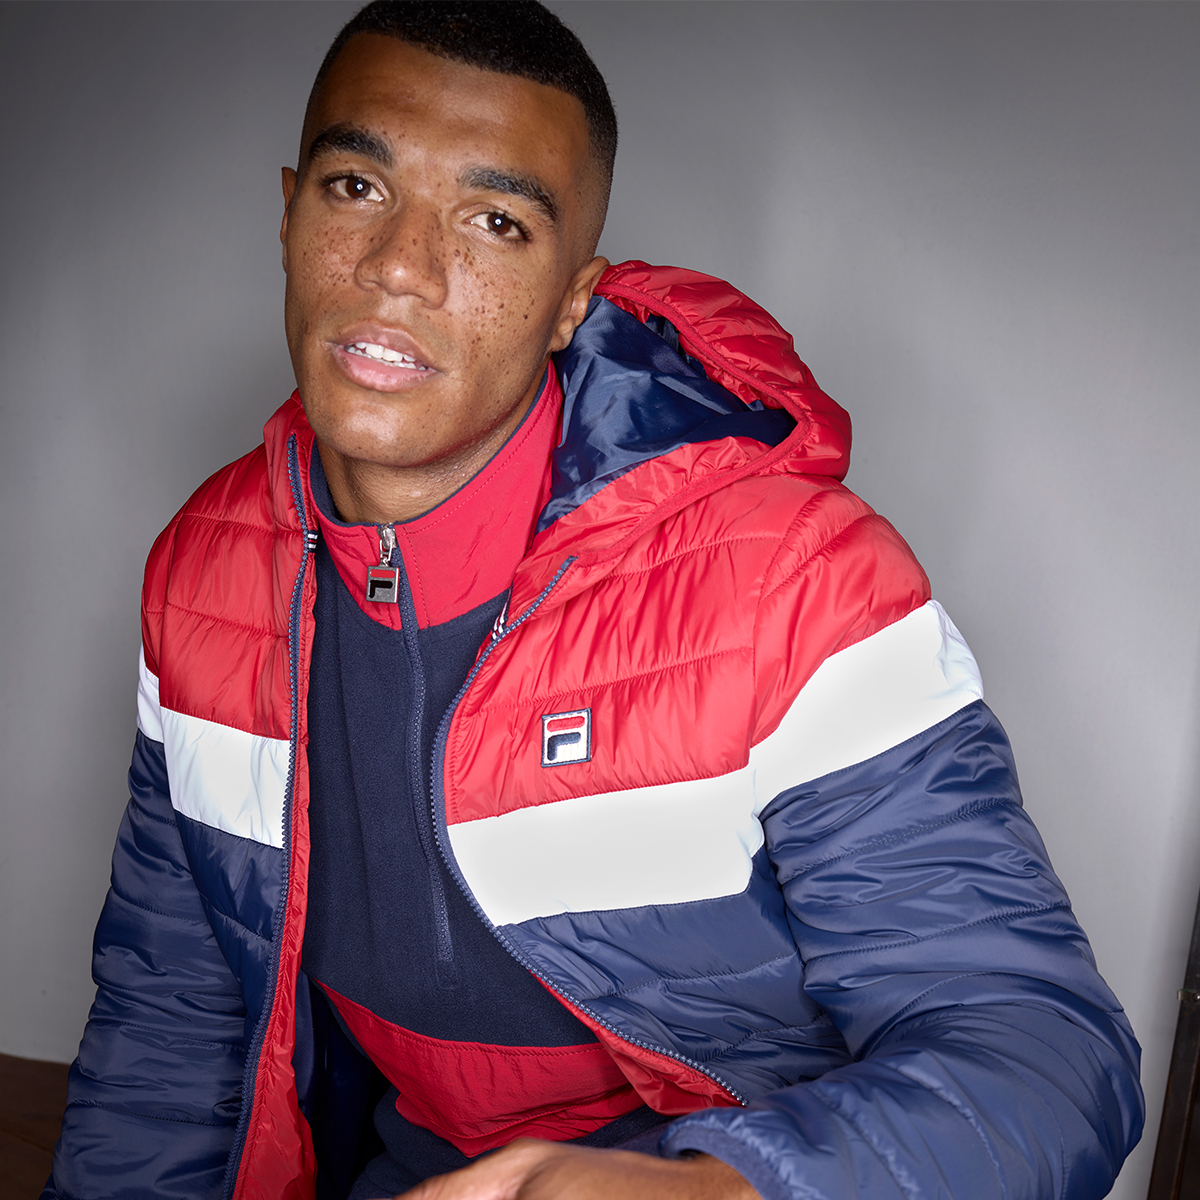 a man looks into the camera wearing a FILA tracksuits